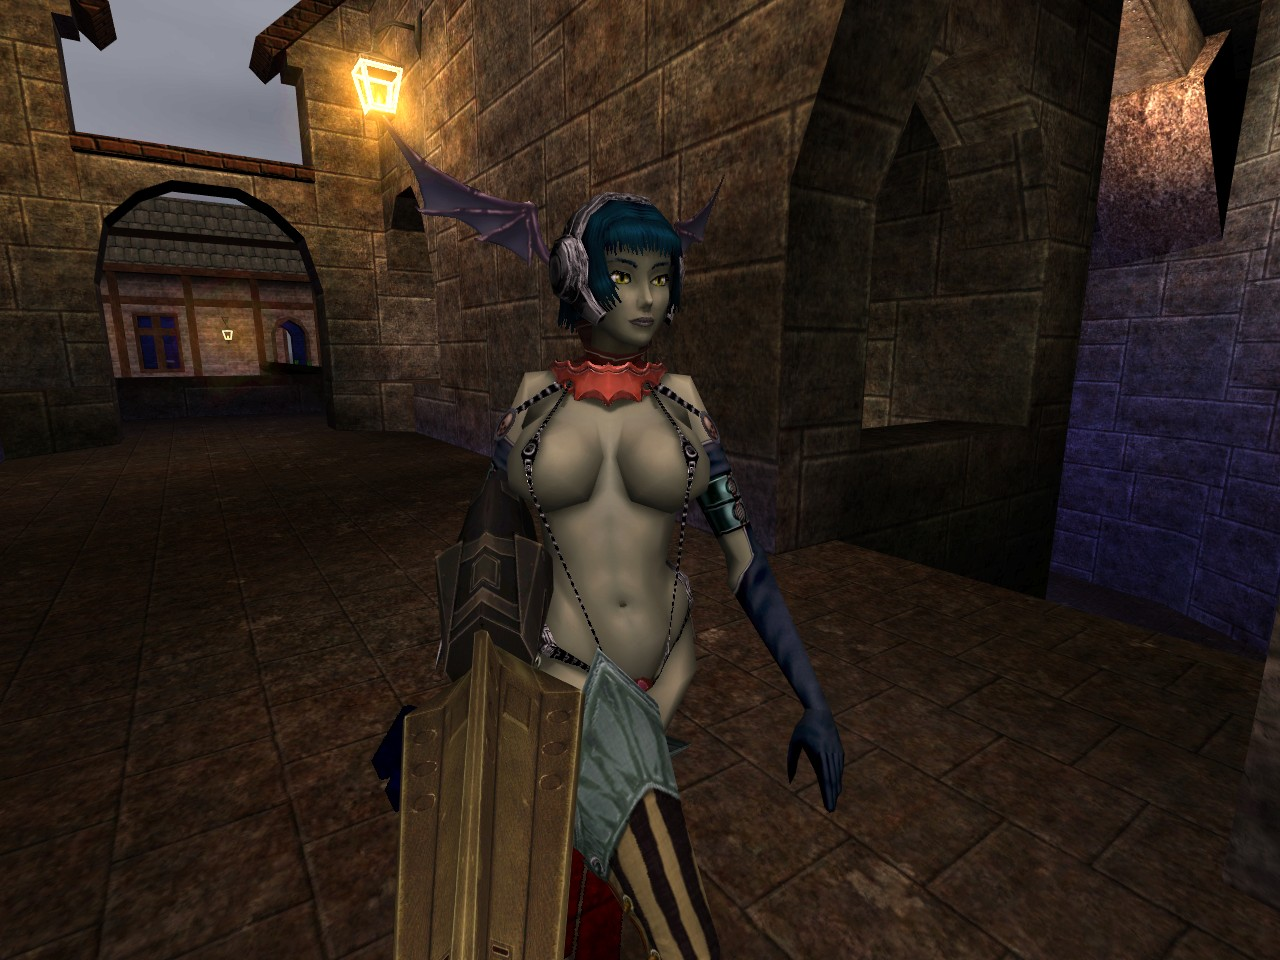 Porn mod for quake 4 sex scenes